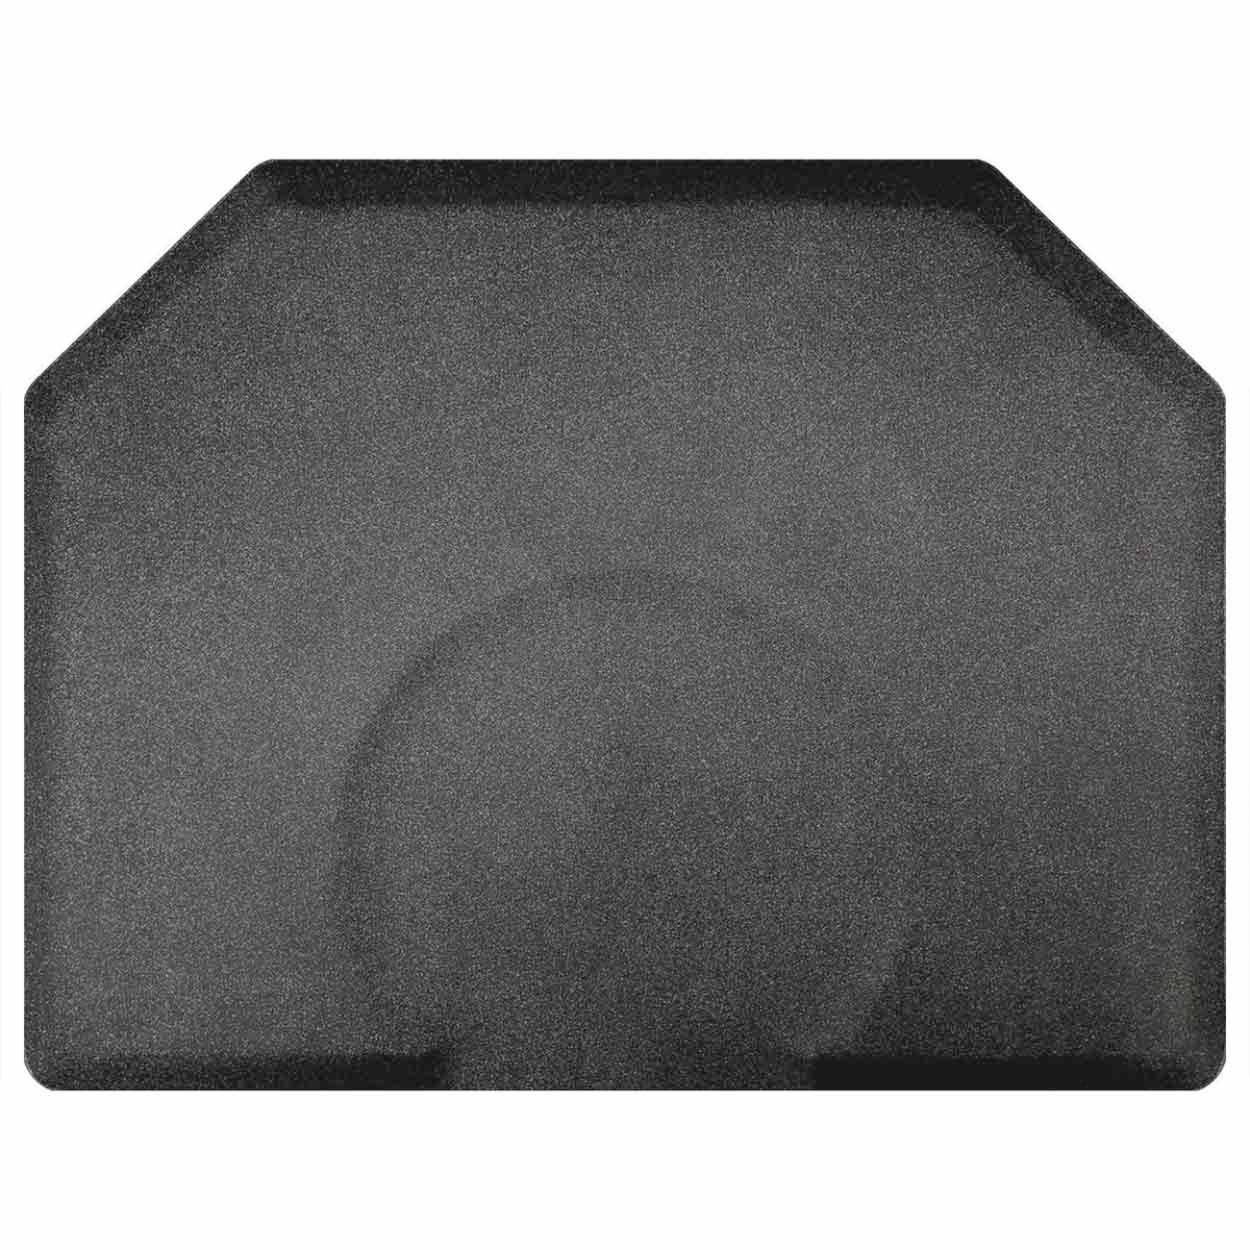 4x5 Granite Hex Anti-Fatigue Salon Mat alternative product image 1